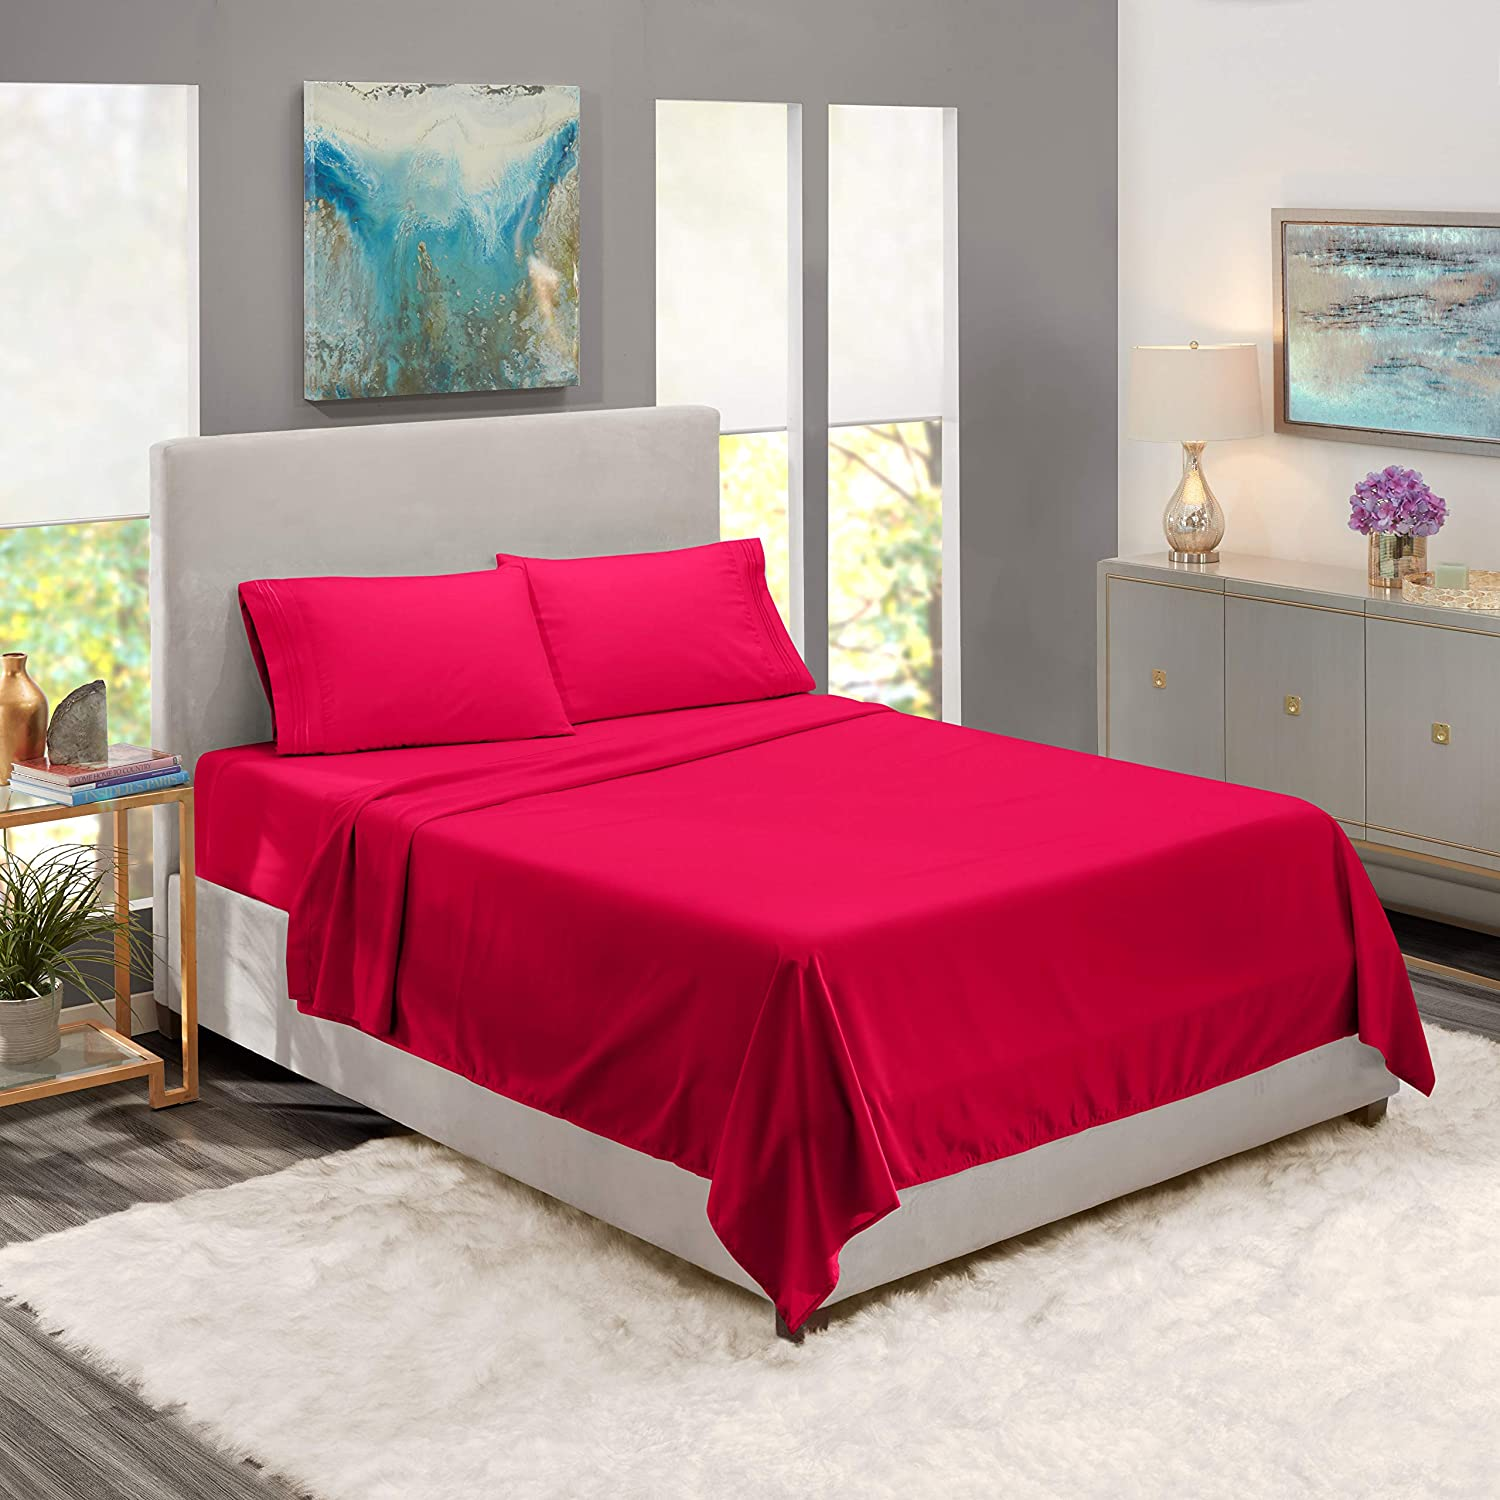 Buy Full Hot Pink Bed Sheet Bedding Set 100 Soft Brushed Microfiber With Deep Pocket Fitted Sheet Full Hot Pink 1800 Luxury Bedding Collection Hypoallergenic Wrinkle Free Bedroom Linen Set By Nestl Bedding Online At Low Prices In